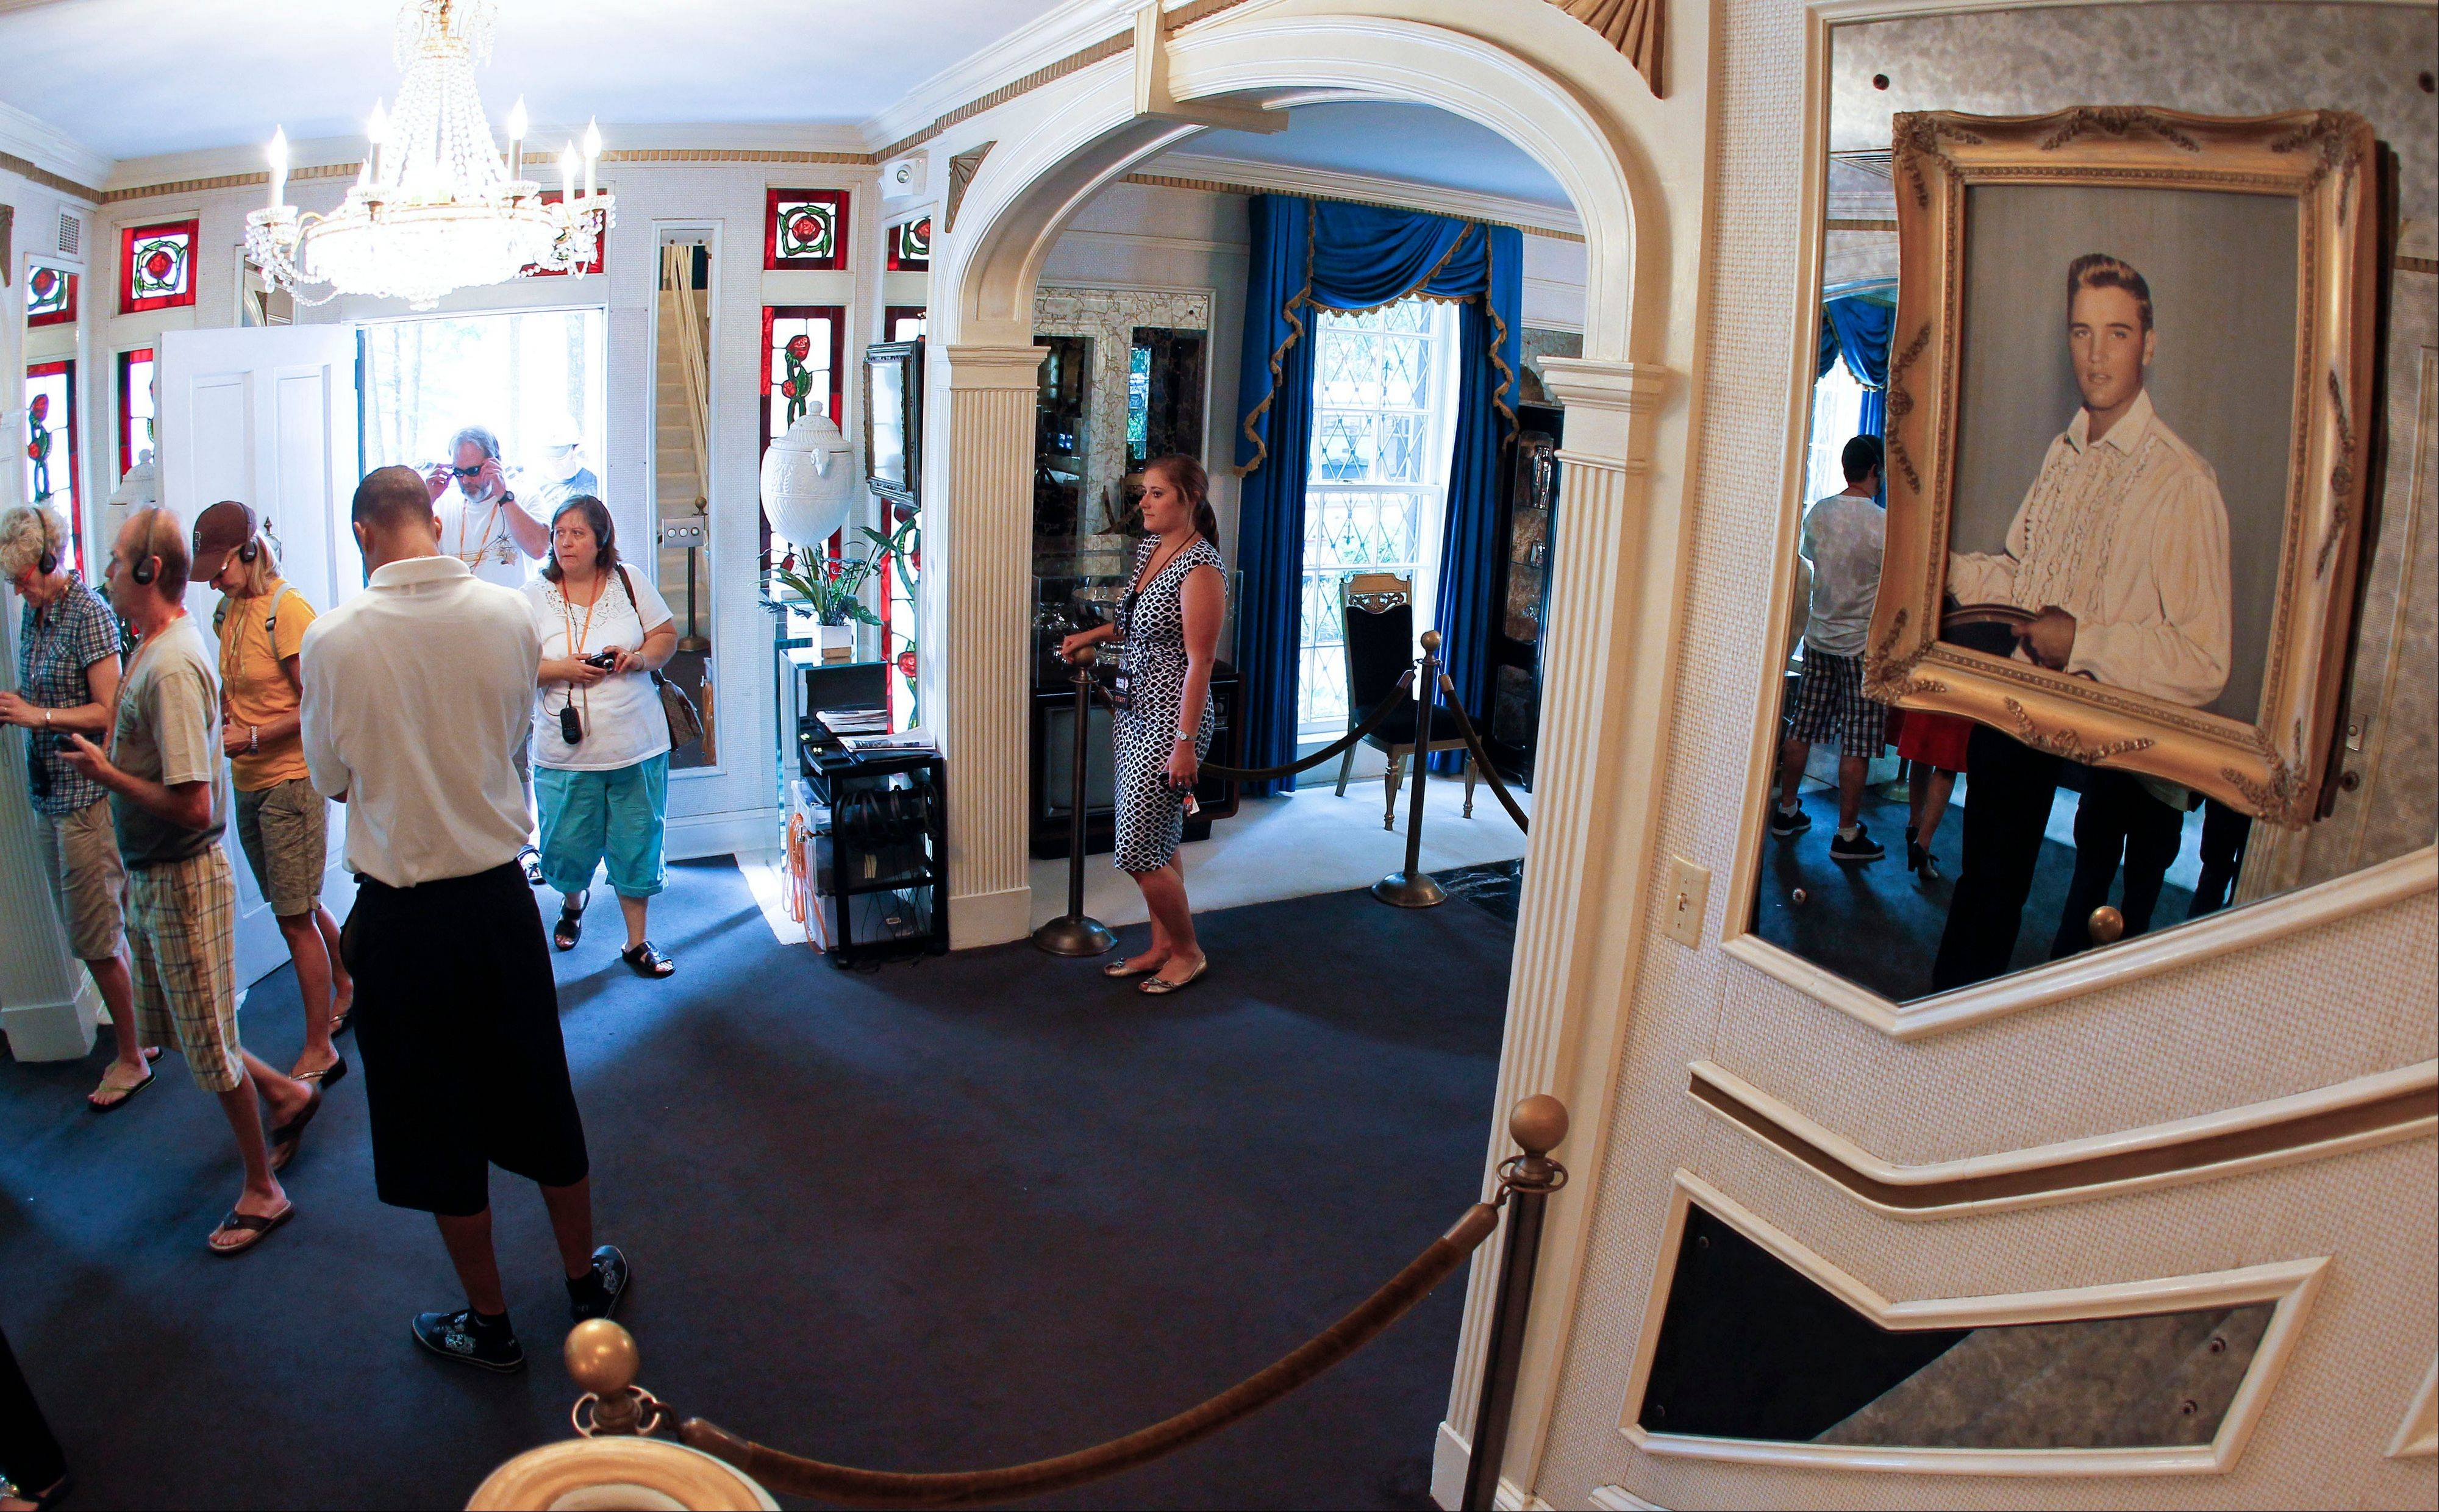 Tourists arrive through the front door of Graceland, Elvis Presley's home in Memphis, Tenn.